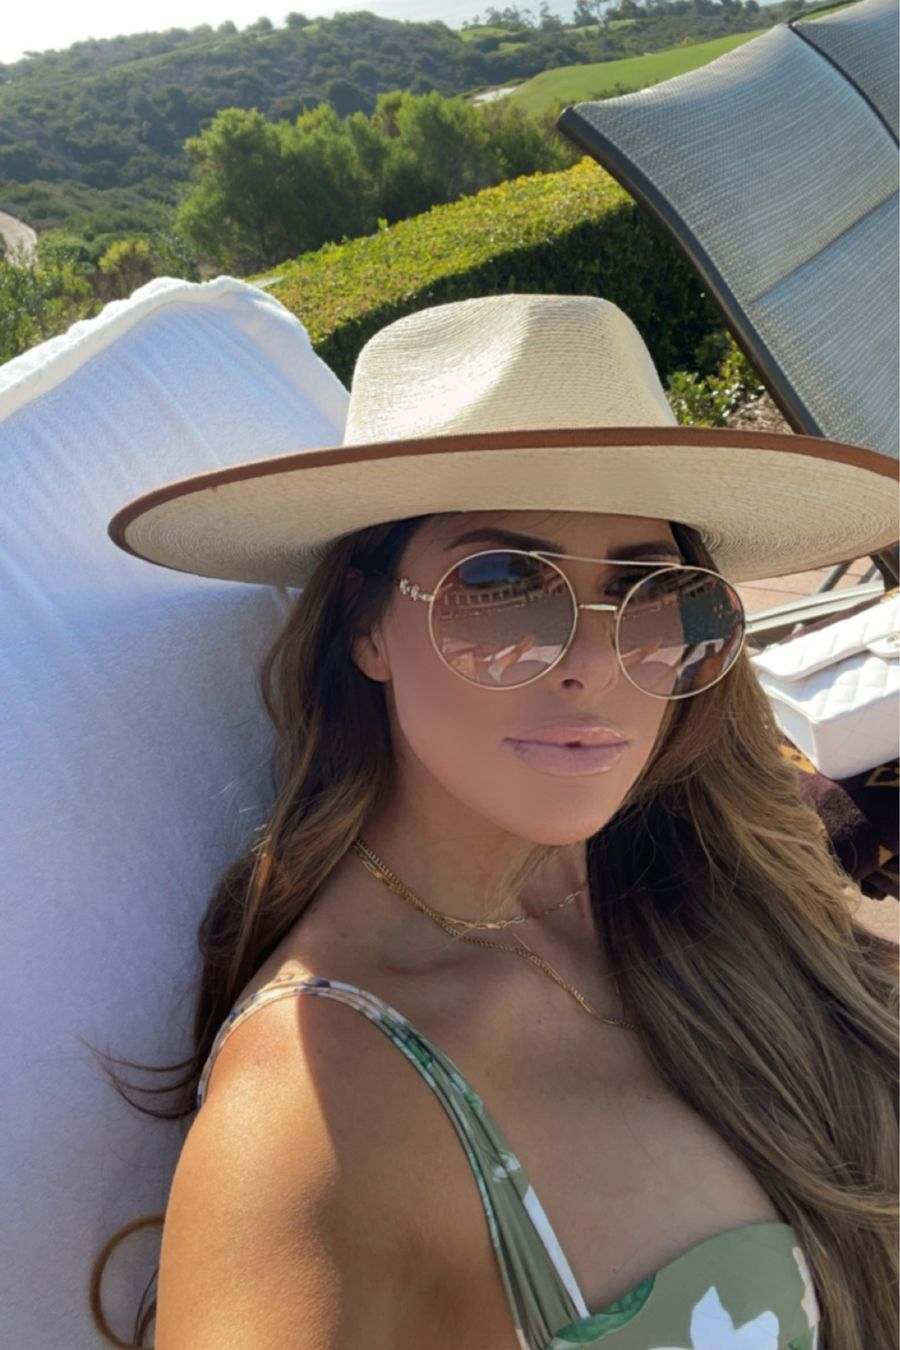 Emily ann gemma, summer style, floral bikini, gucci sunglasses, poolside styles, gucci handbag   Instagram Recap by popular US life and style blog, The Sweetest Thing: image of Emily Gemma sitting on a poolside lounge chair and wearing a straw fedora hat, round frame sunglasses, and green and white floral print swimsuit.